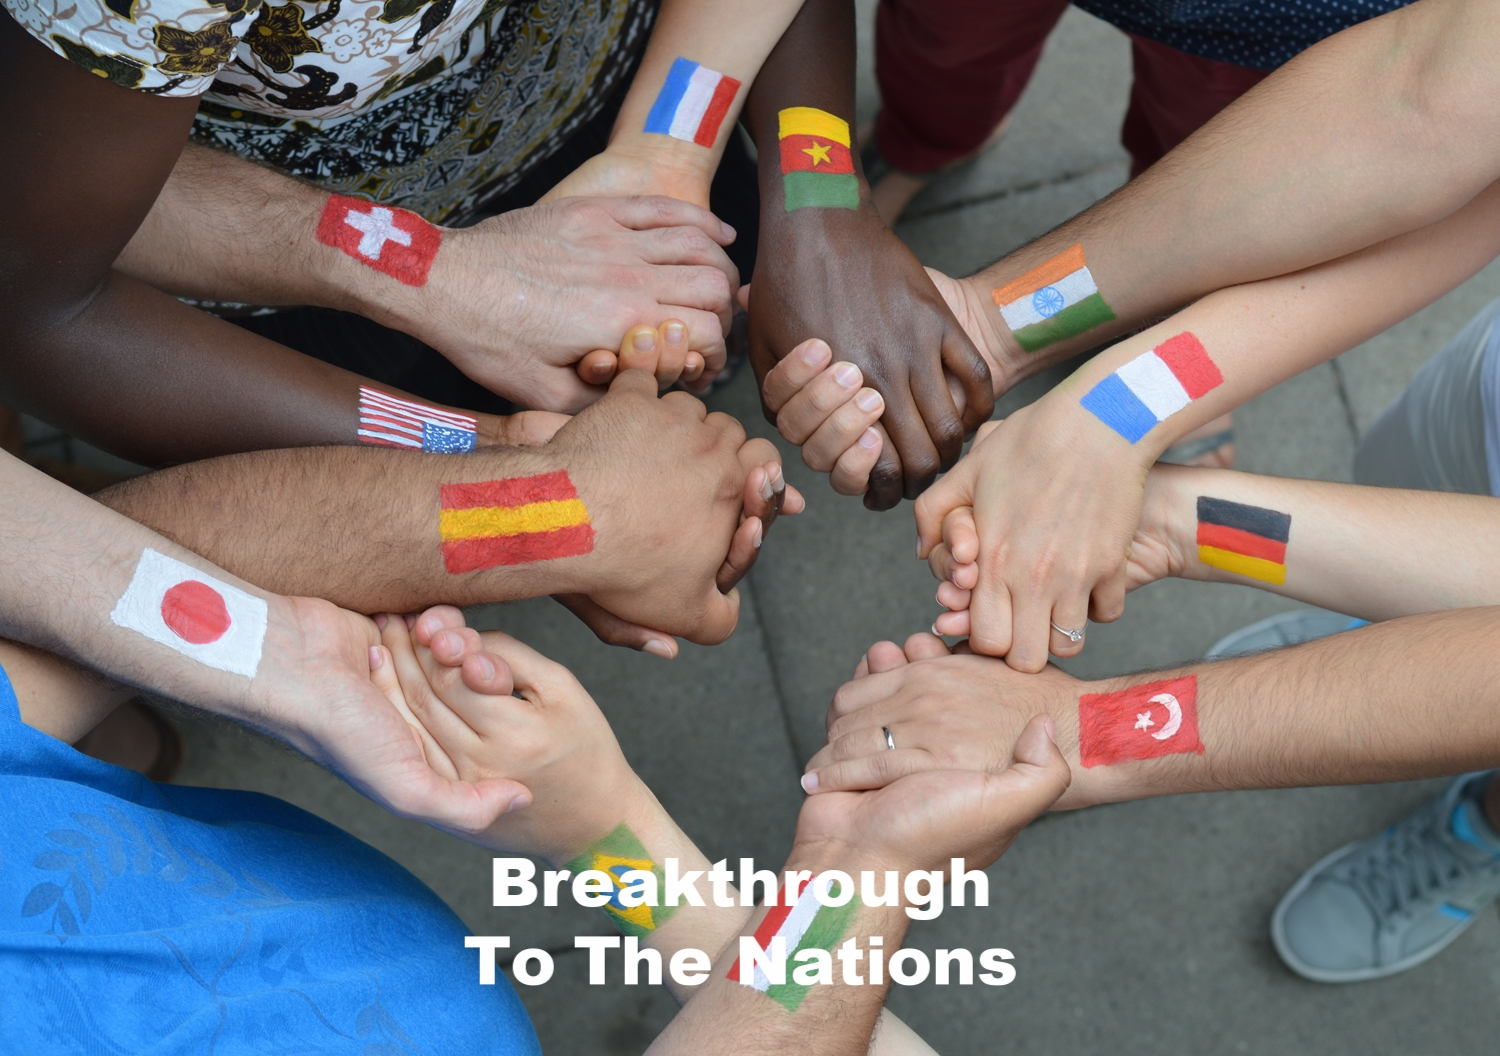 Copy of Breakthrough To The Nations